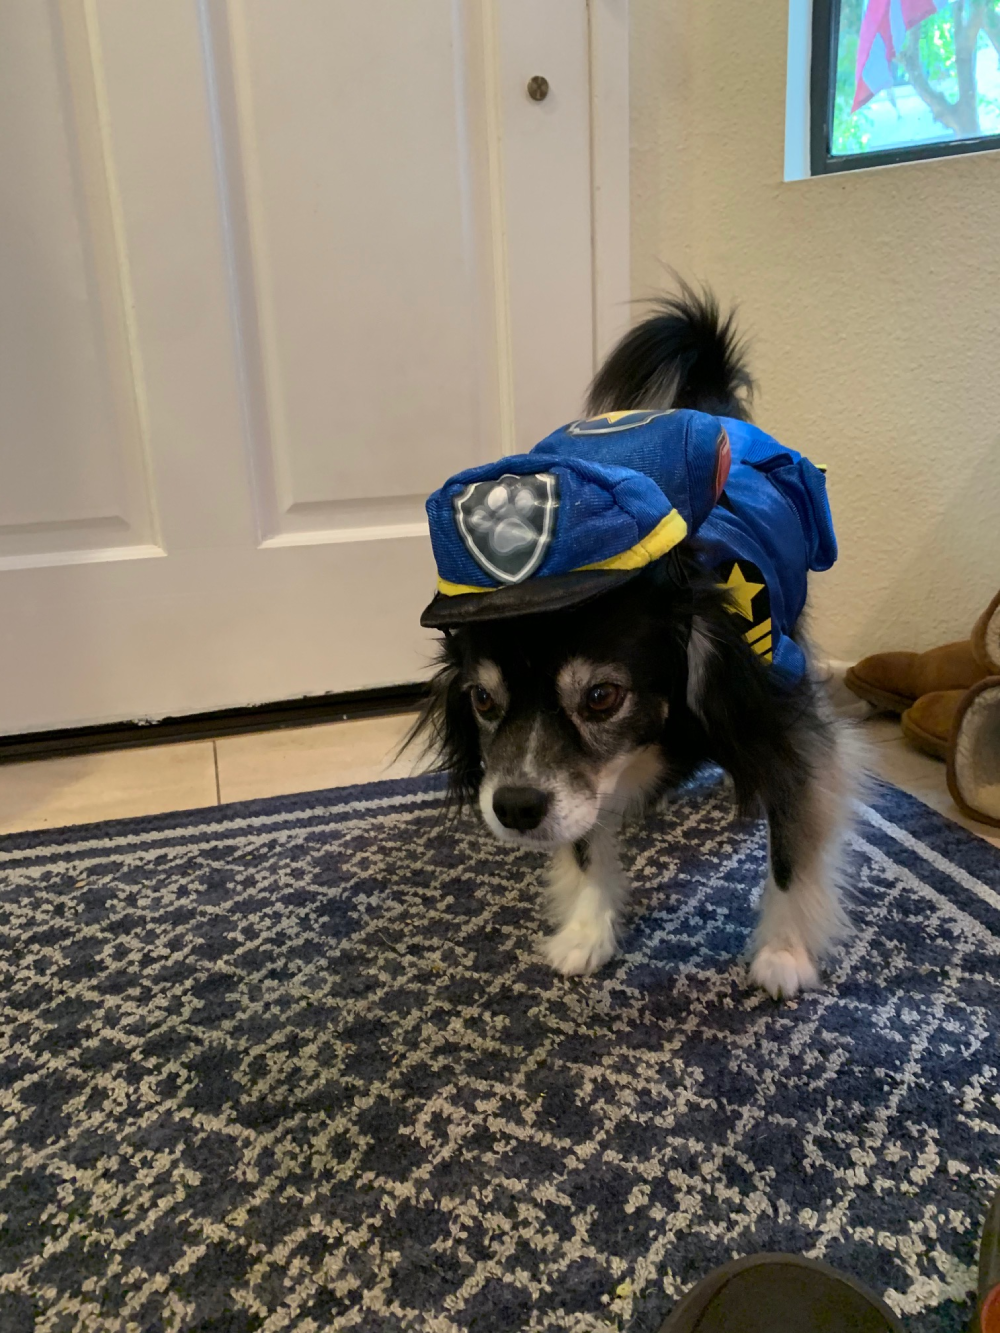 Jake as Chase from Paw Patrol